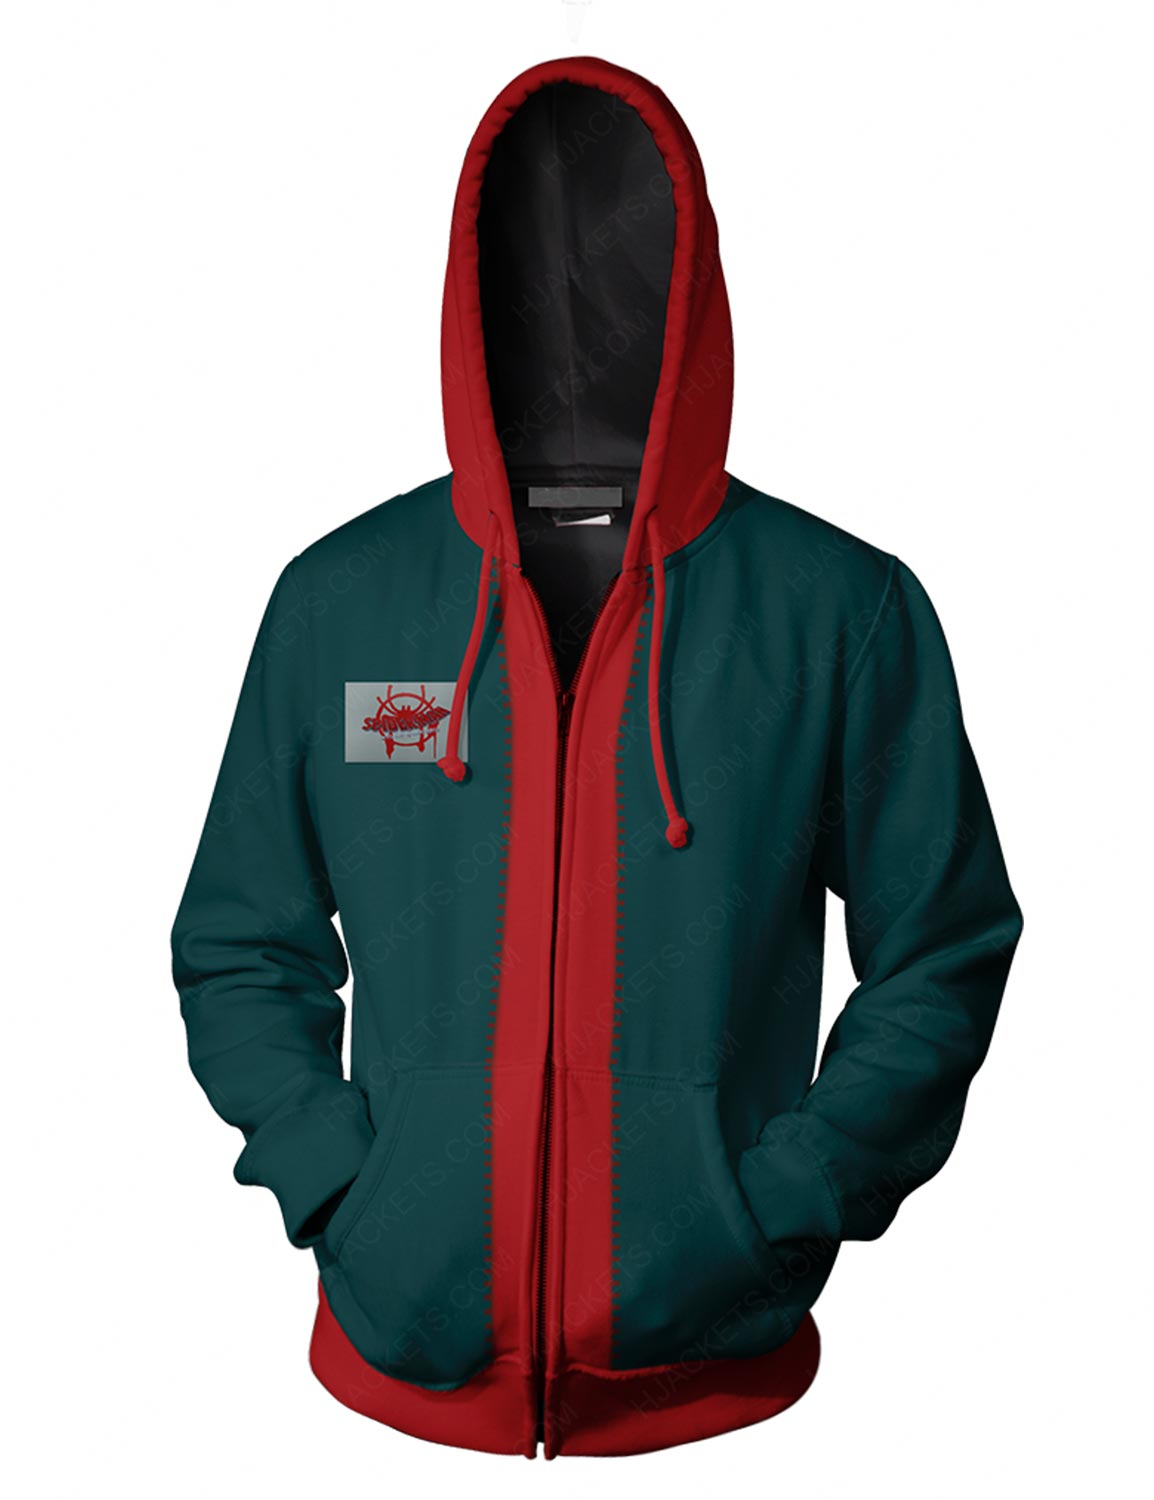 into-the-spider-verse-hoodie-2.jpg